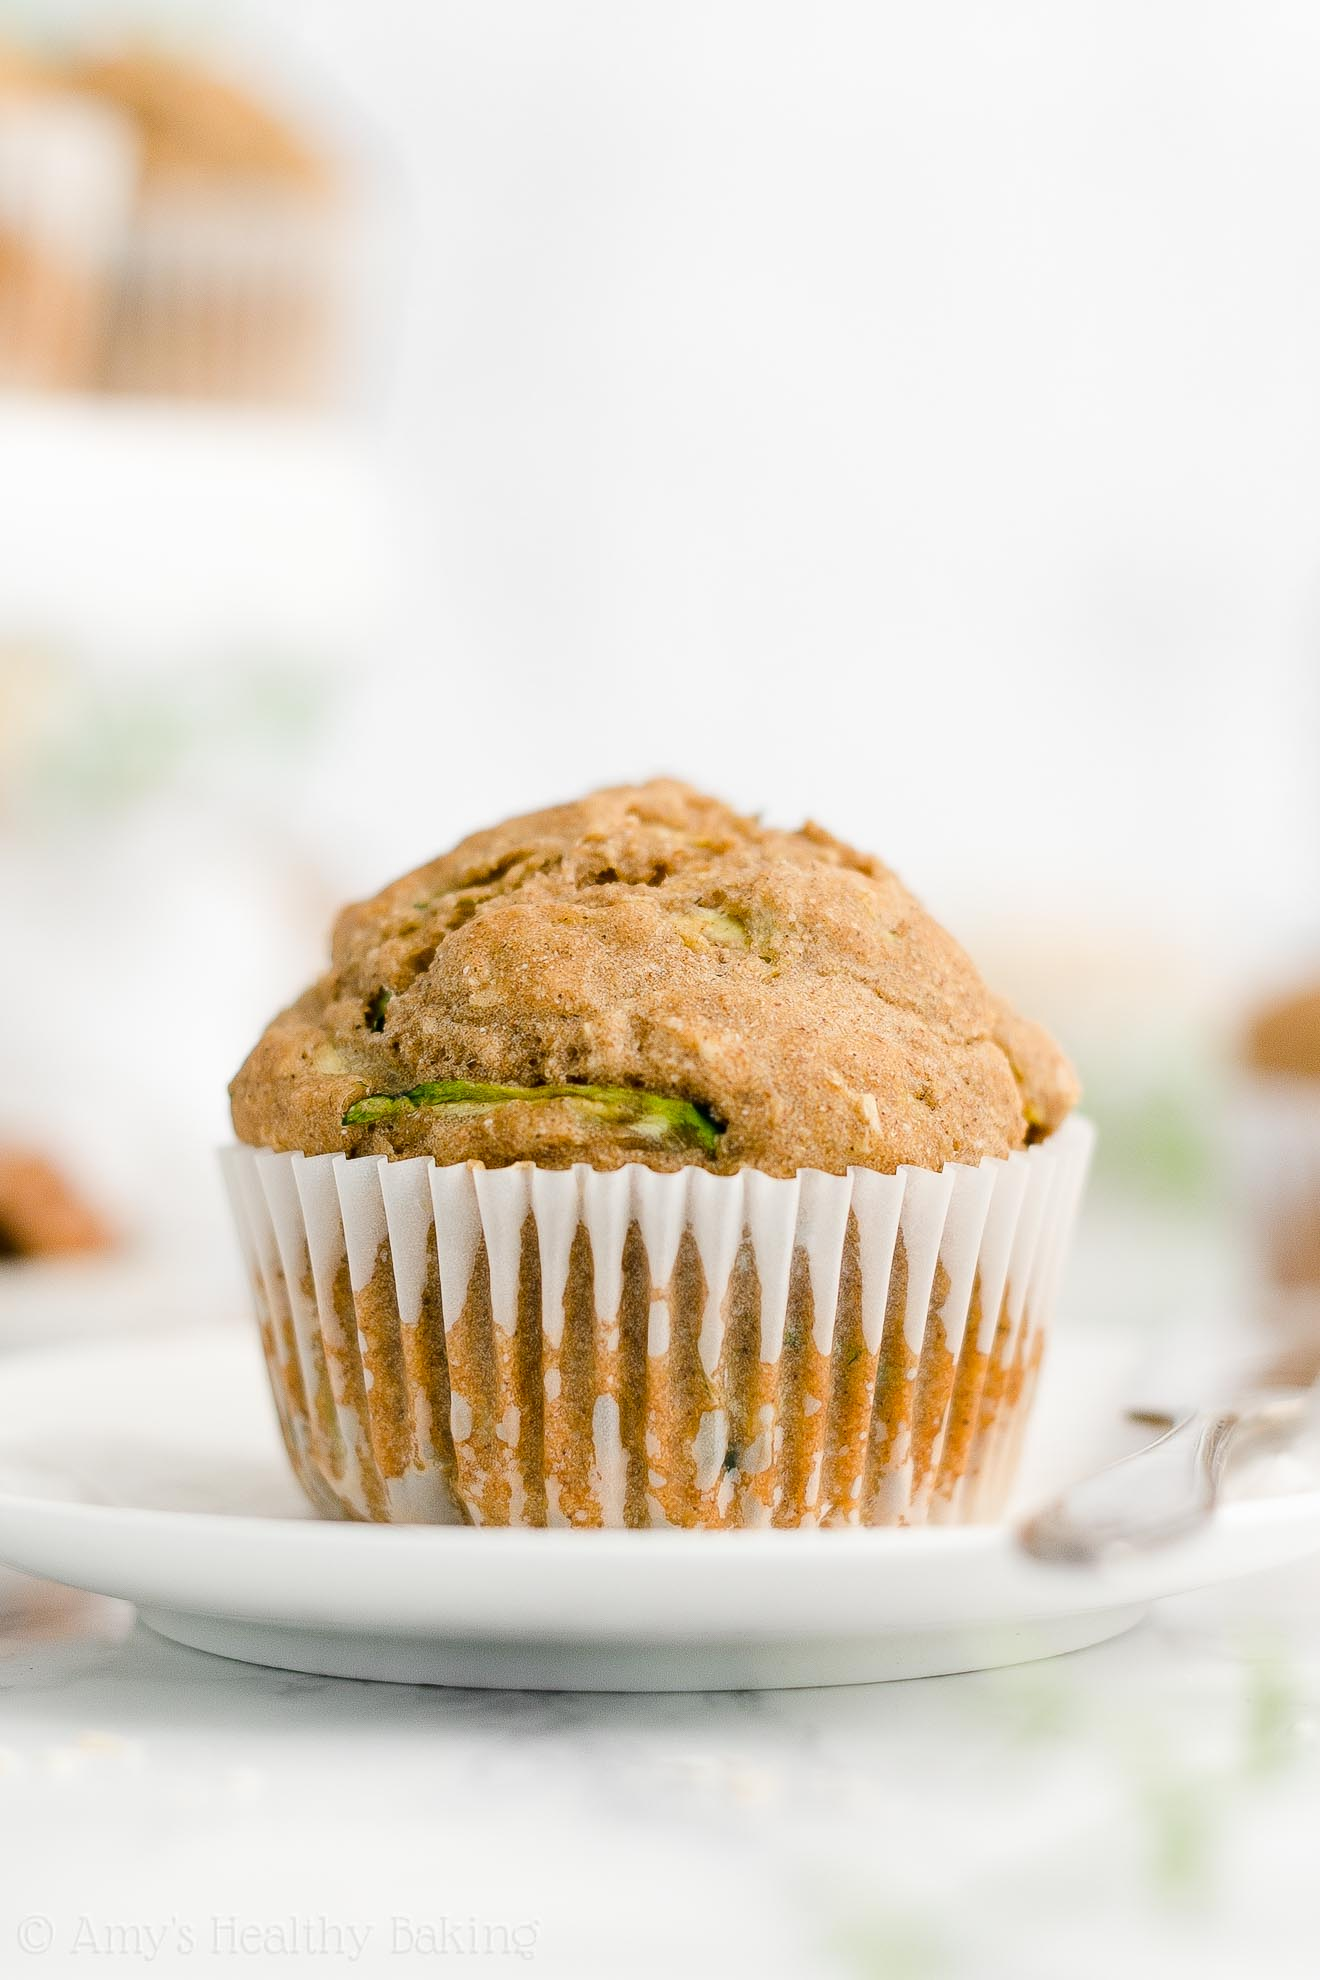 Best Easy Healthy Gluten Free No Sugar Greek Yogurt Zucchini Oatmeal Muffins